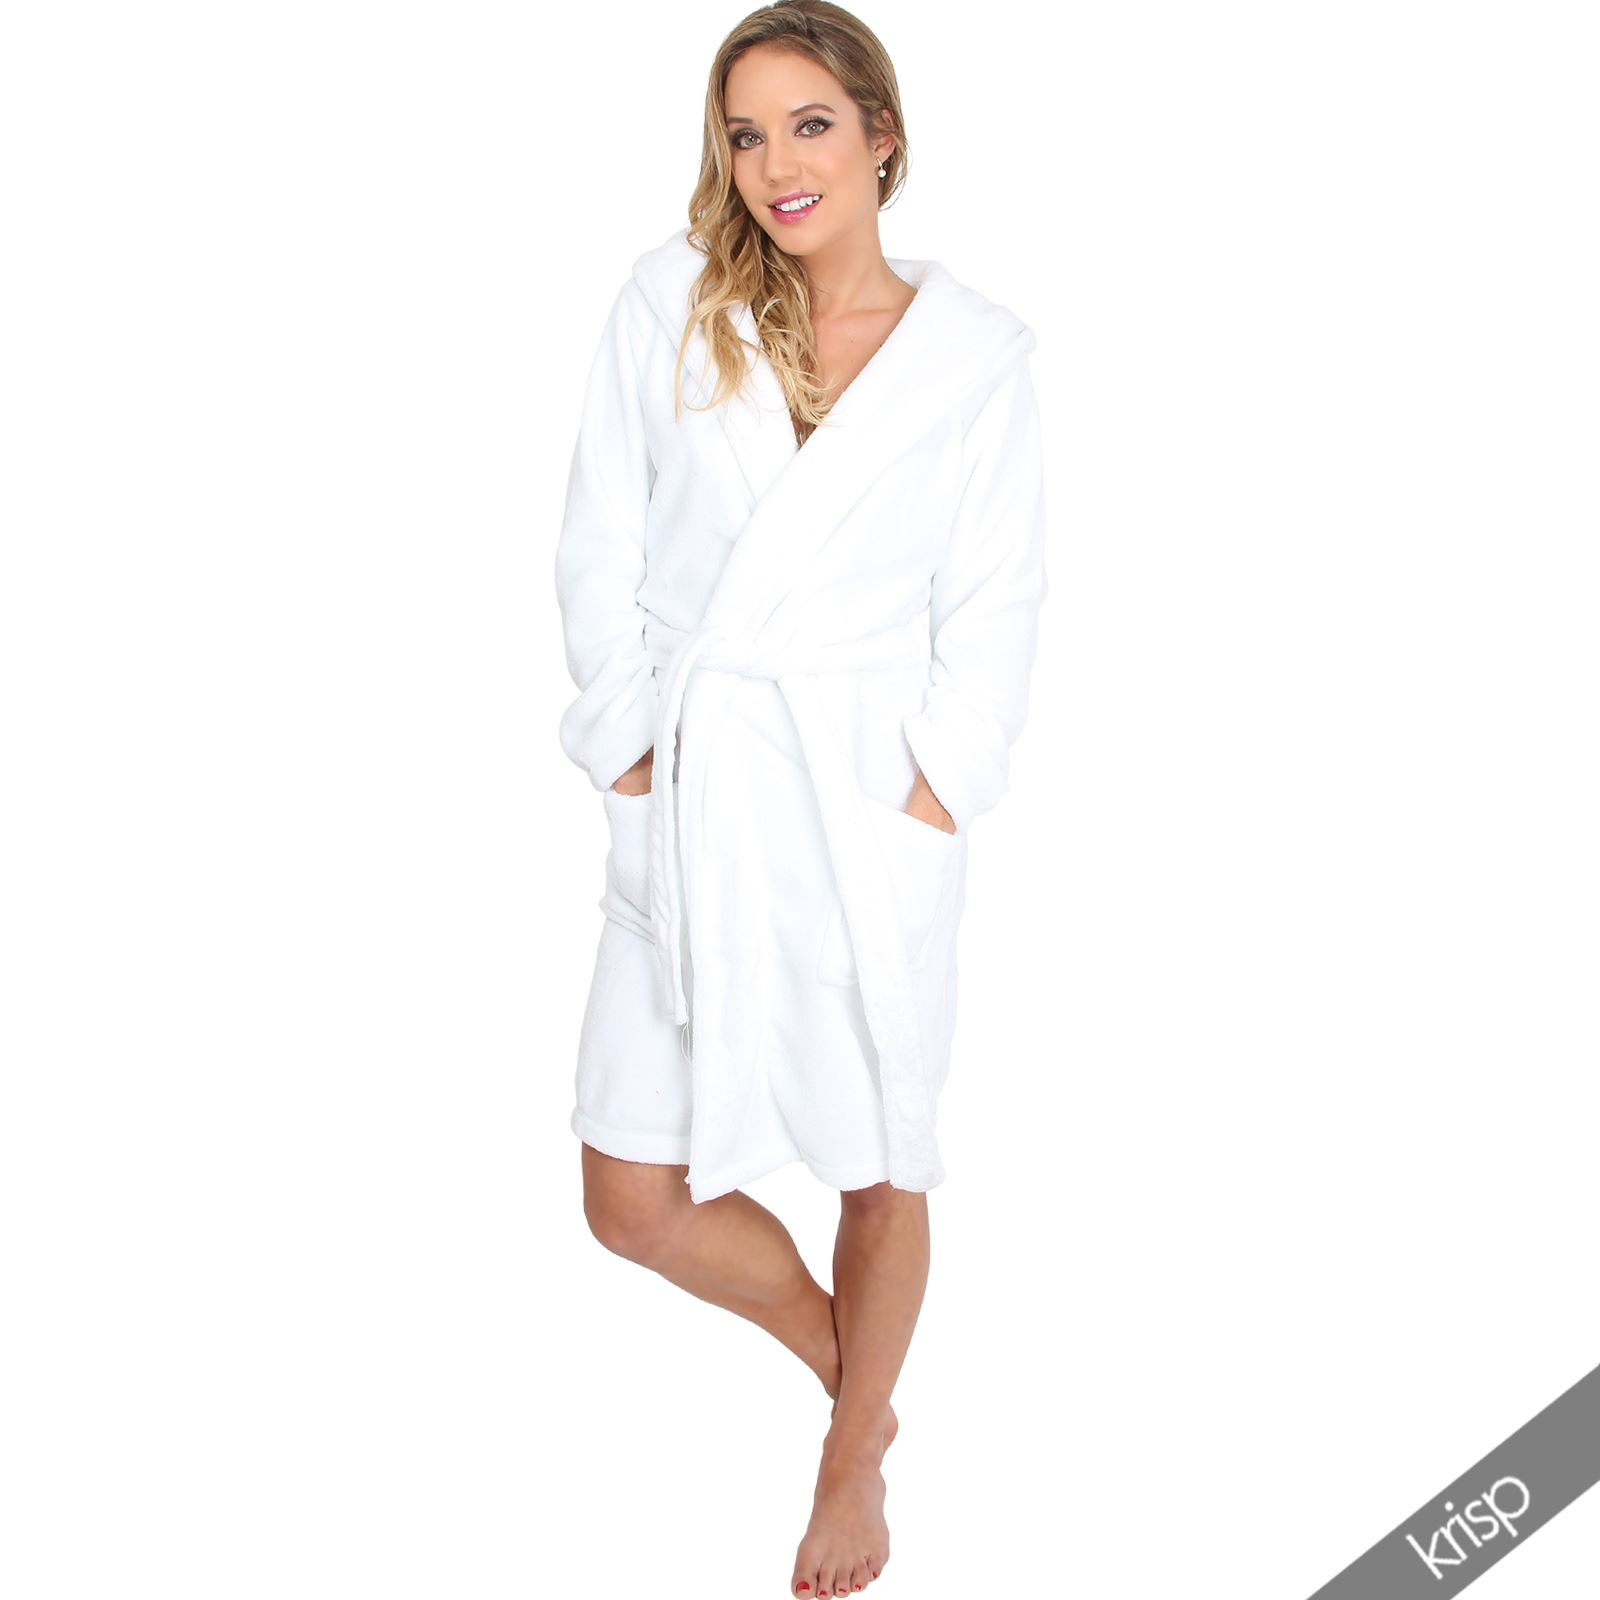 Bathrobe: Womens Hooded Fleece Bathrobe Soft Dressing Gown Plain